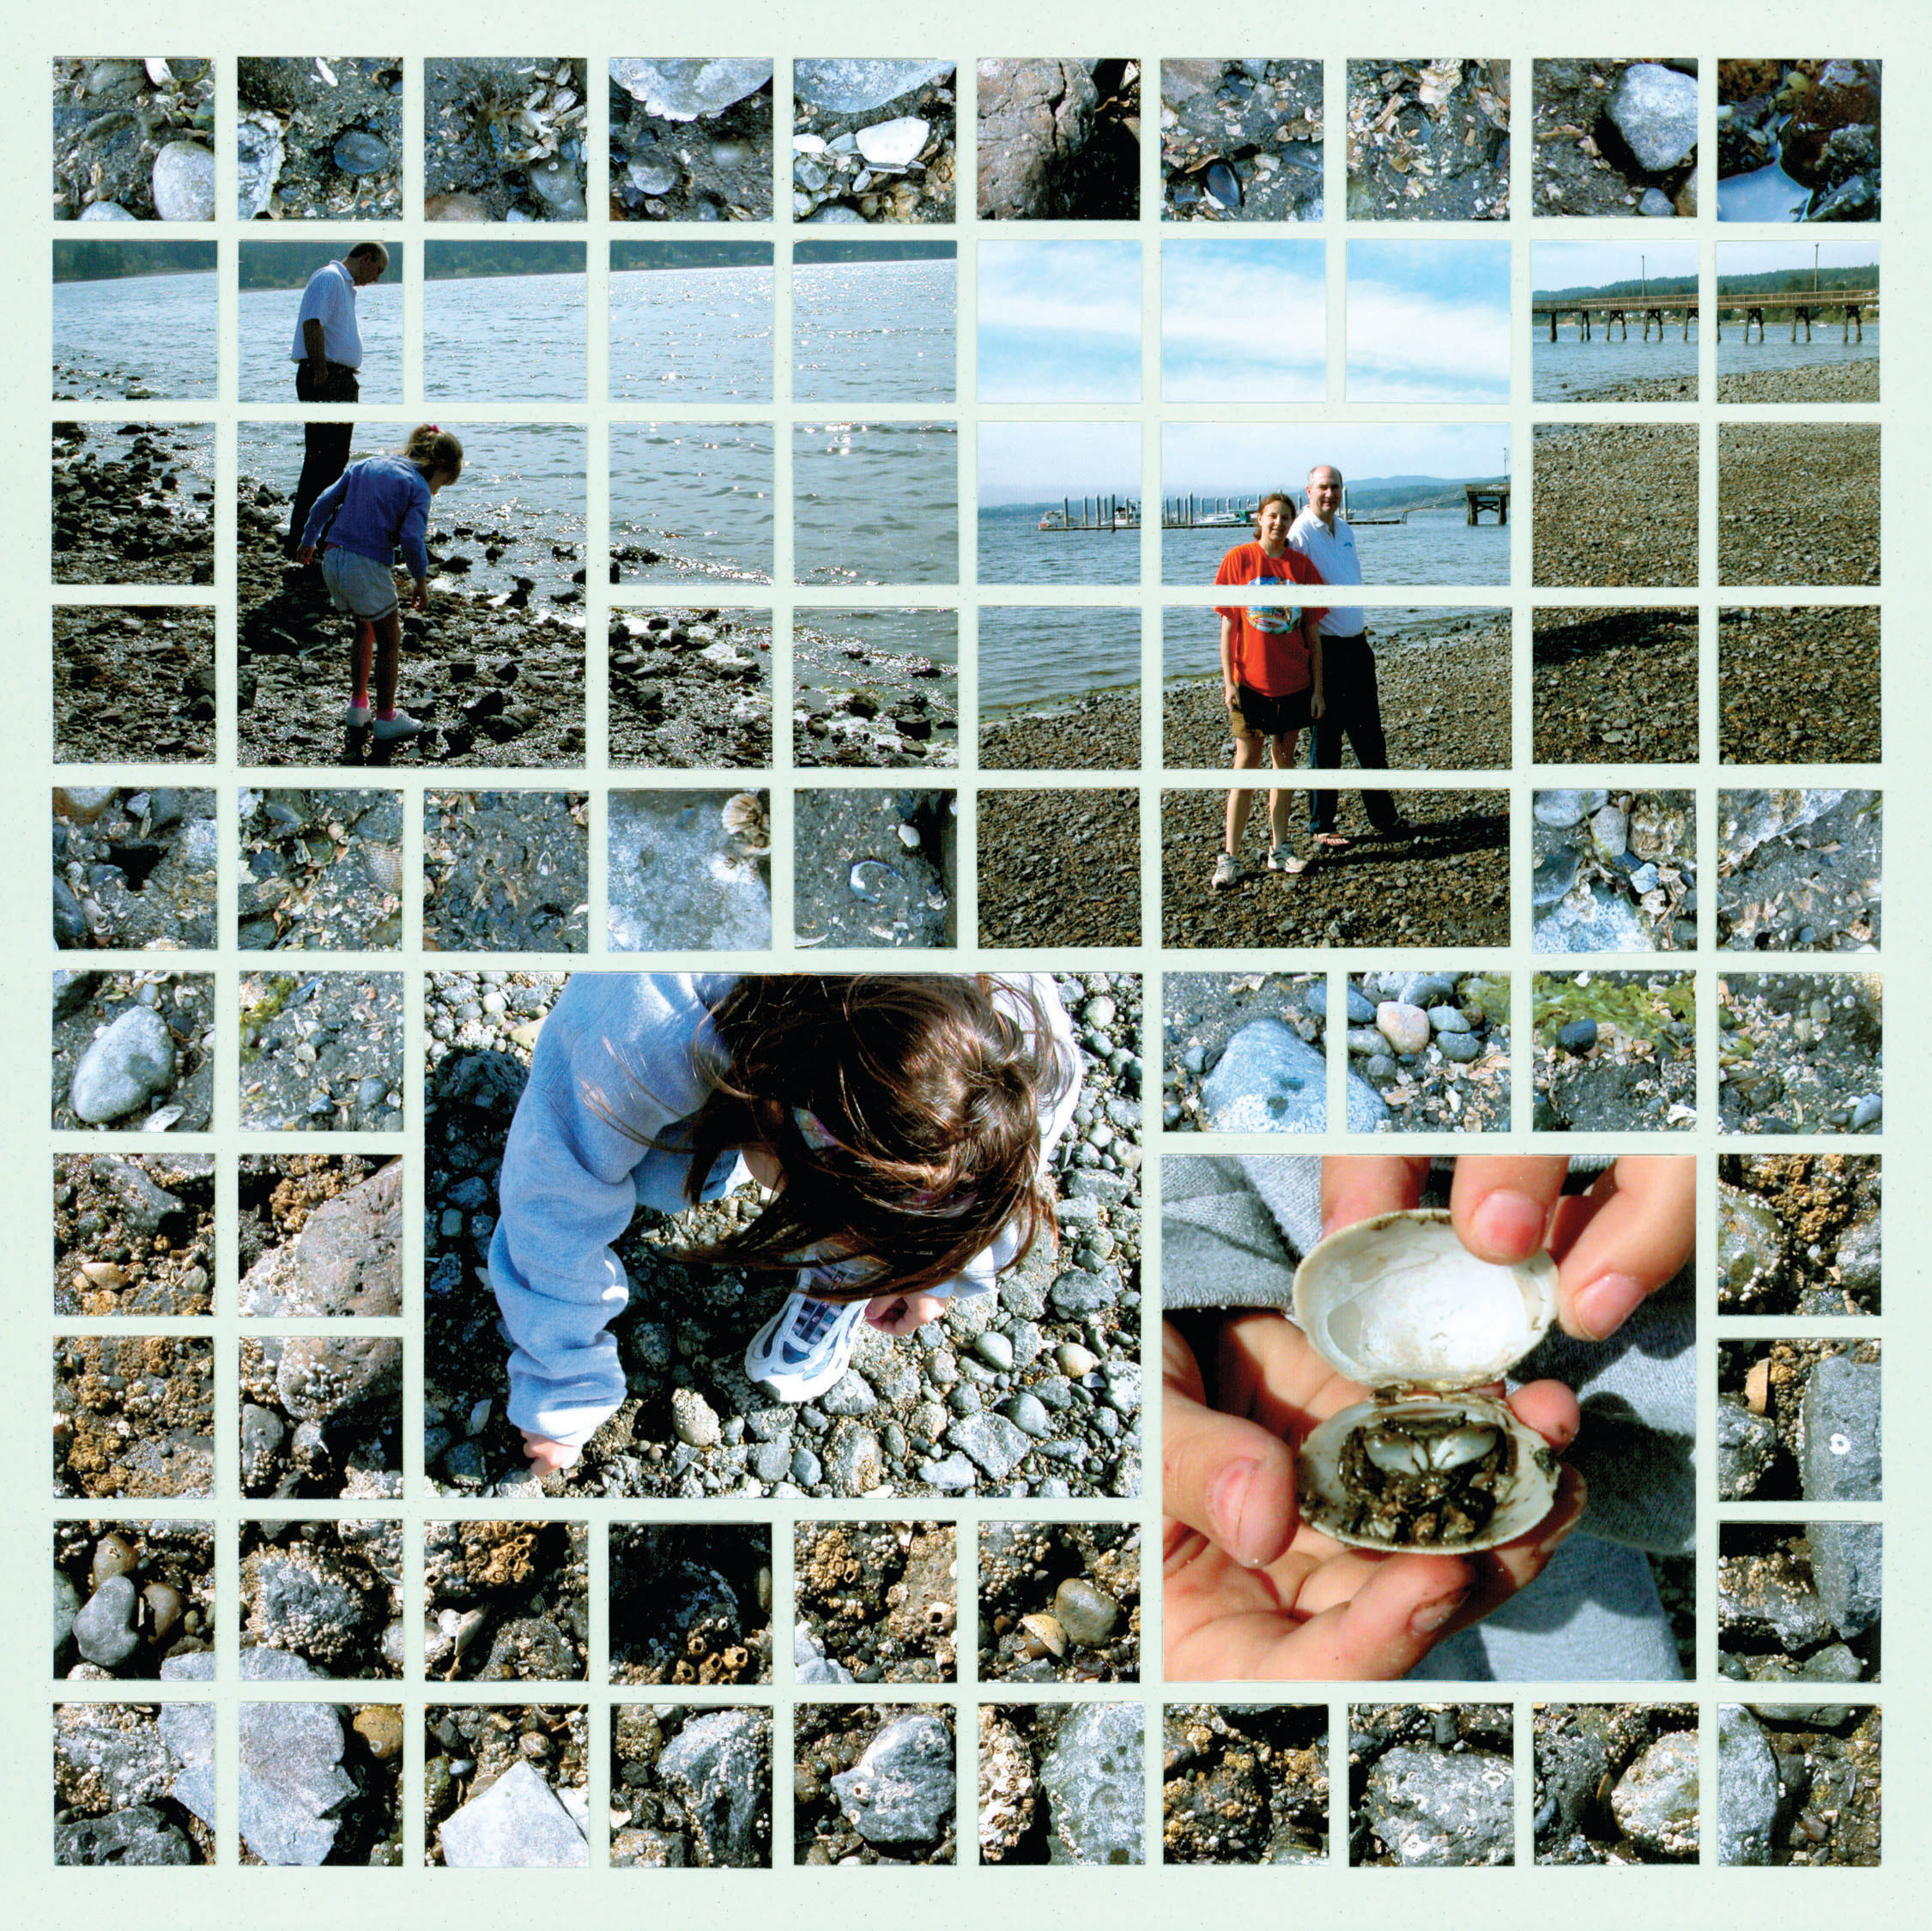 Scrapbook ideas new orleans - Are You At A Rocky Beach A Beach Full Of Seashells Or Even Just A Sandy Beach All Of These Make Great Scrapbook Pages